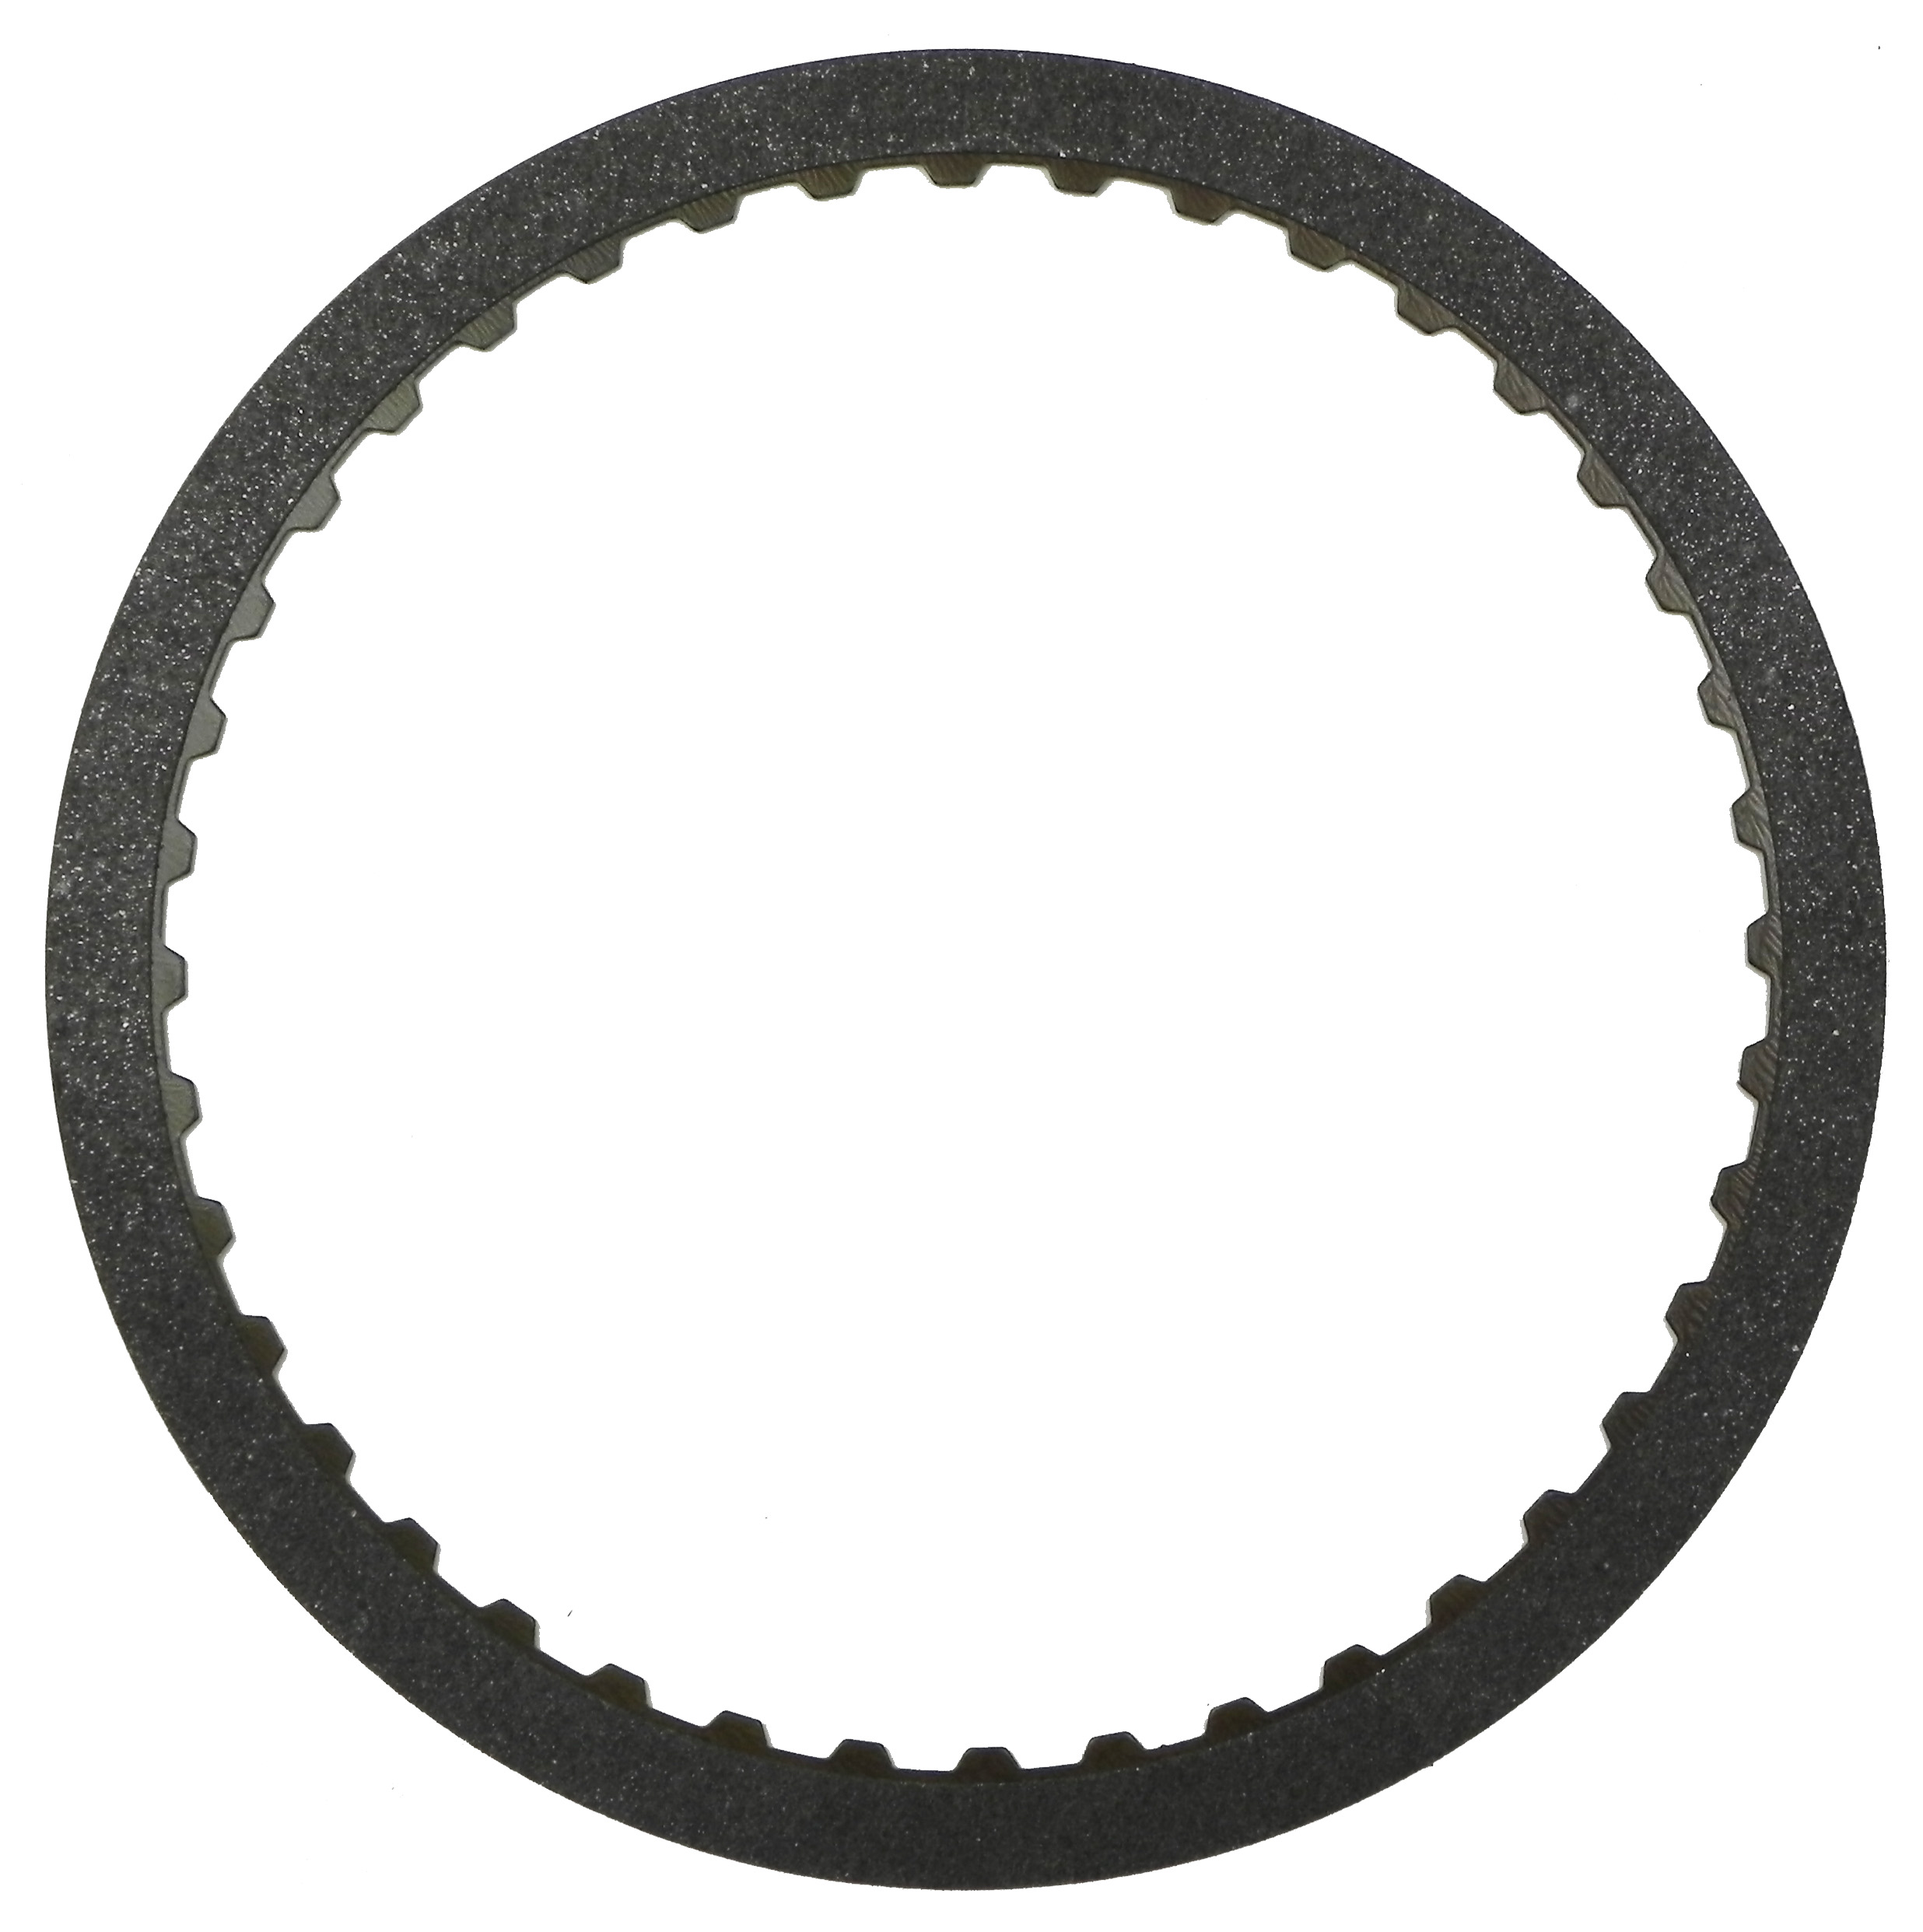 R572657 | 1999-2007 Friction Clutch Plate High Energy B2 2nd Brake (Waved) High Energy